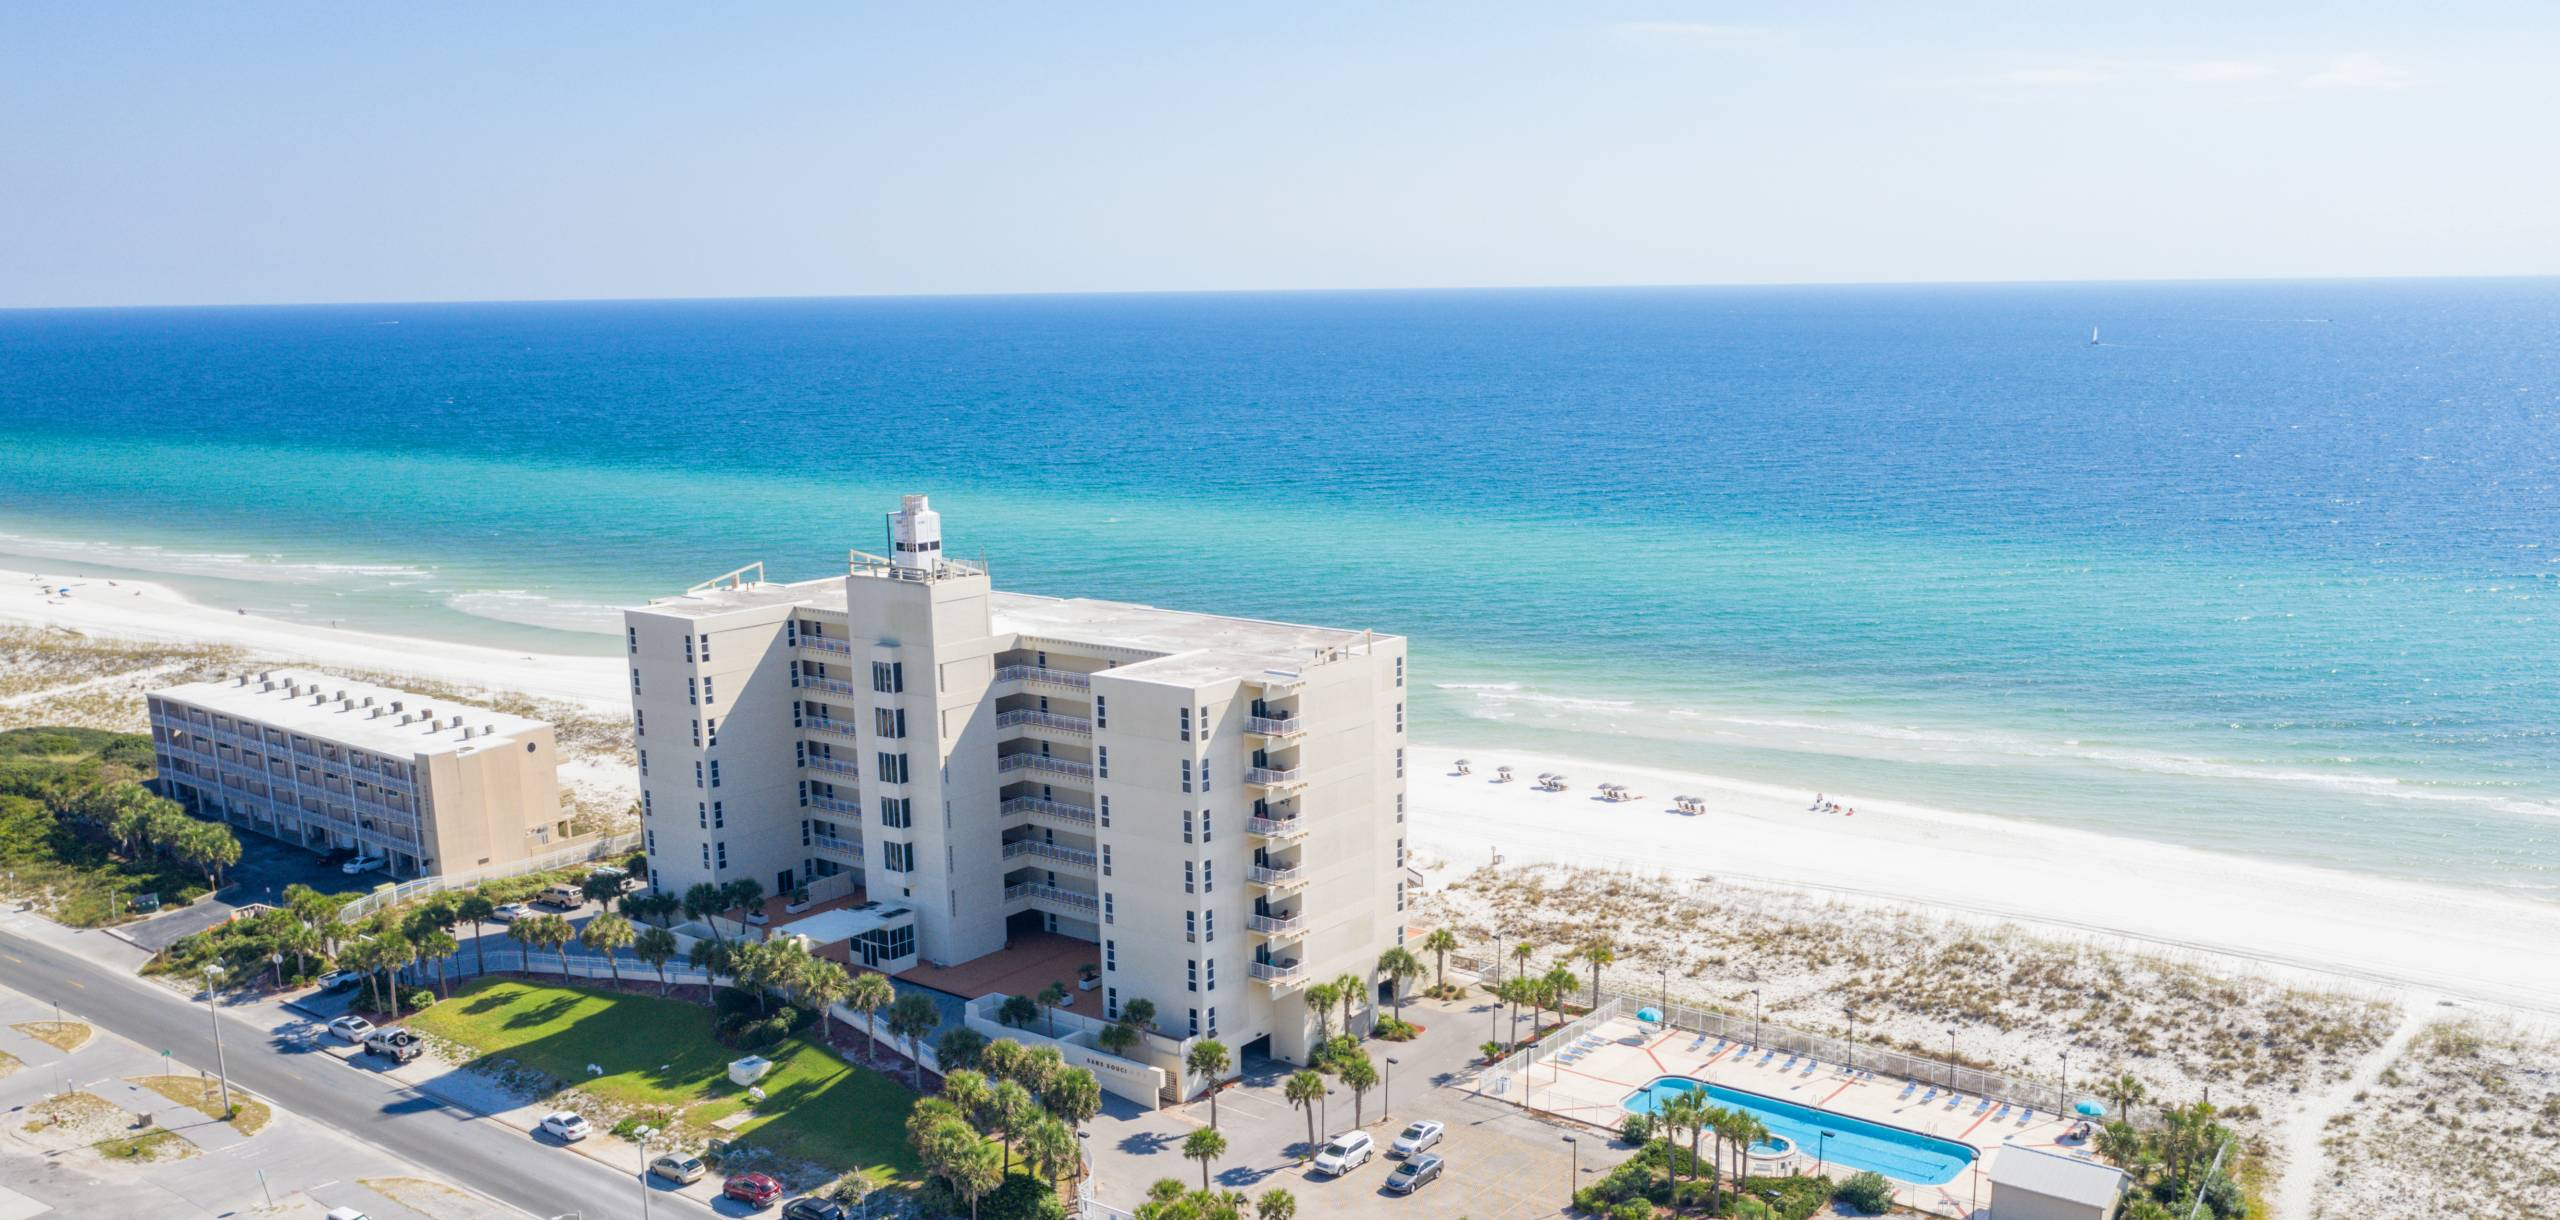 Condos and Town homes with amazing views of the Gulf!